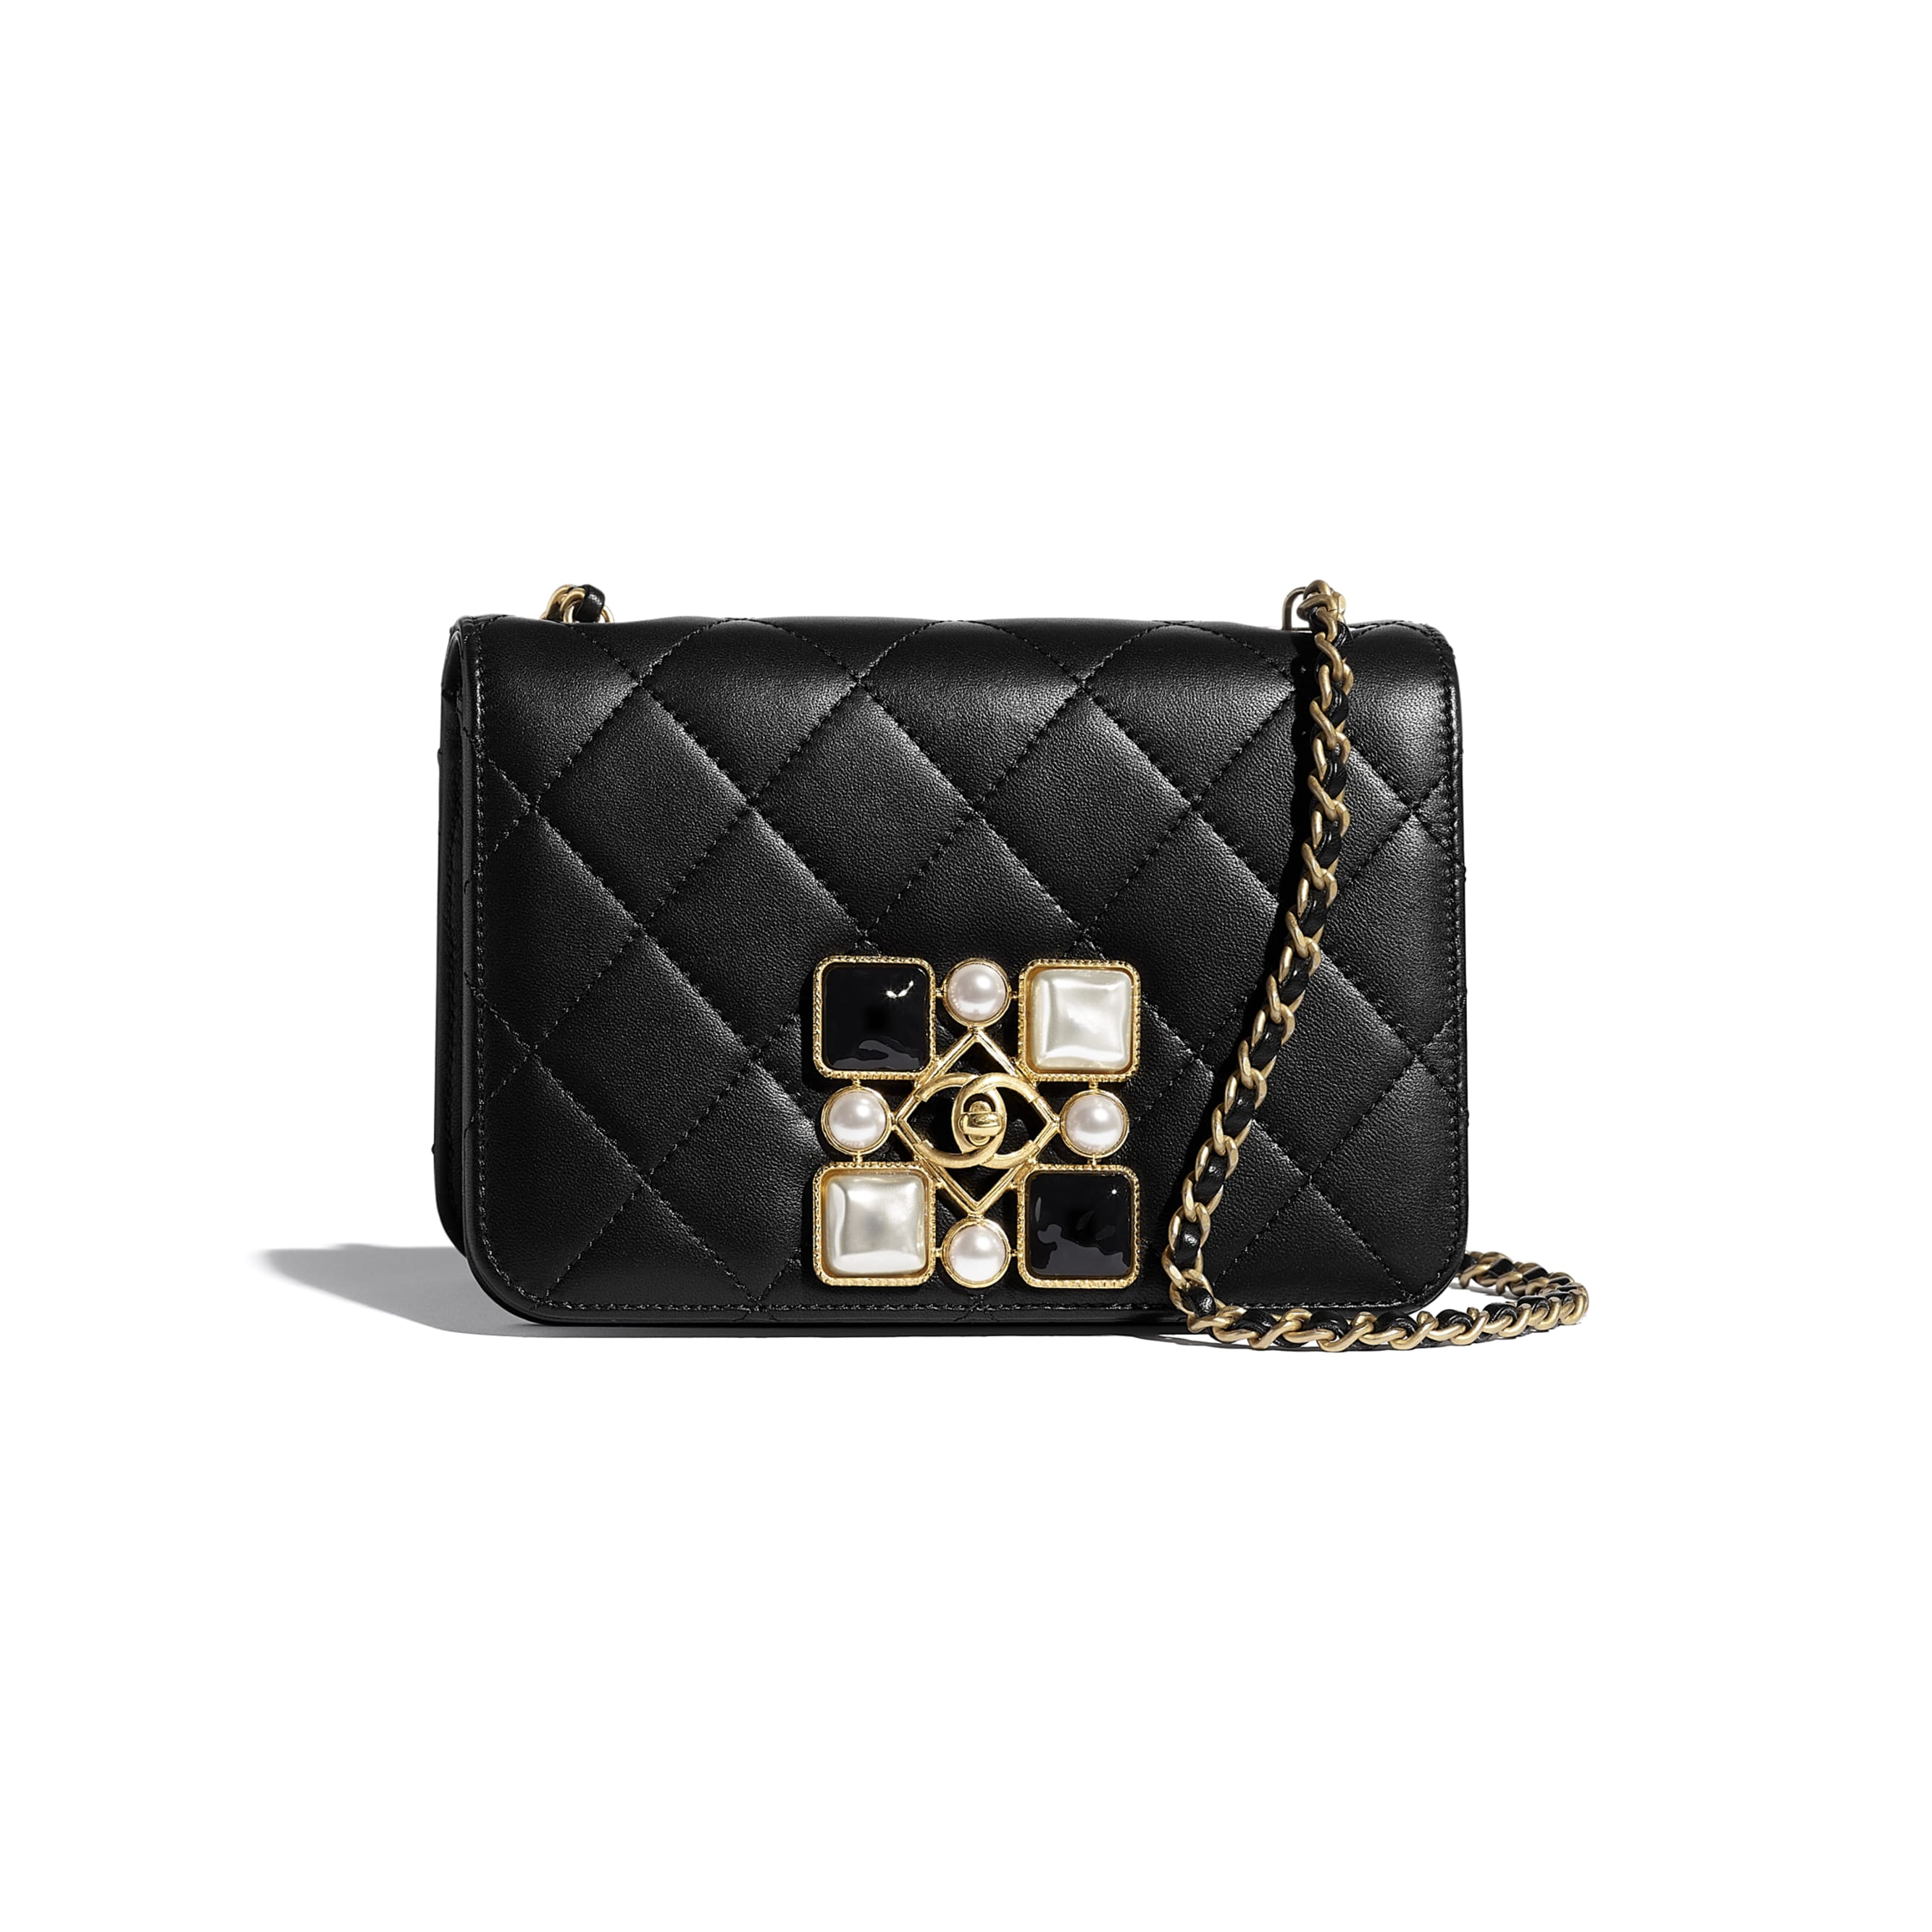 Flap Bag - Black & White - Calfskin, Crystal Pearls, Resin & Gold-Tone Metal - CHANEL - Default view - see standard sized version